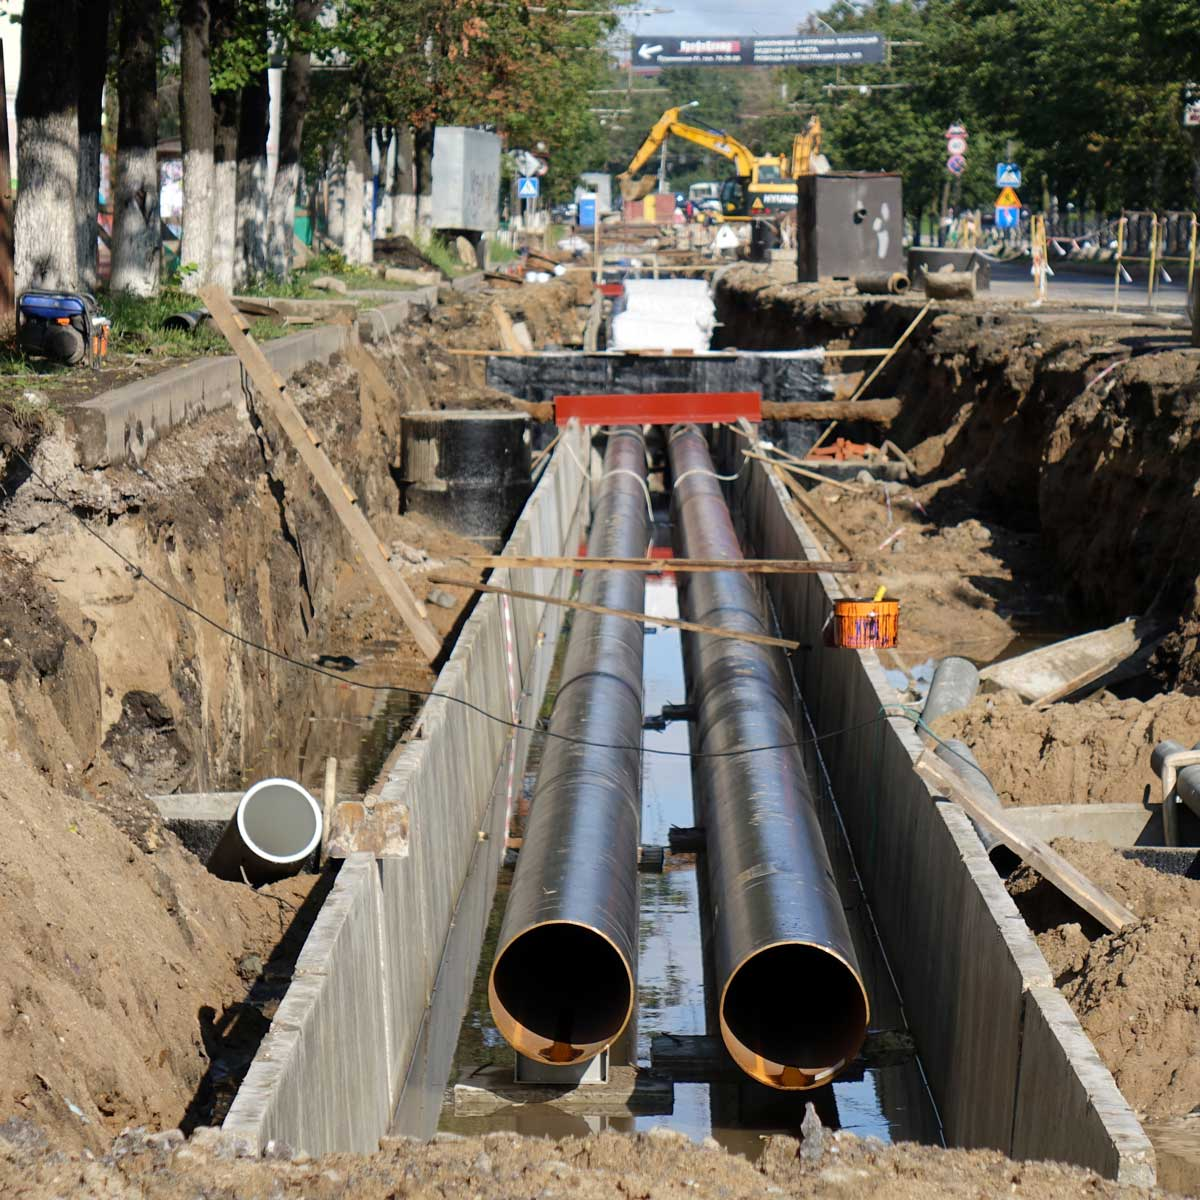 Replacement pipes in the city. Construction of heating mains for municipal infrastructure, the concept of development.